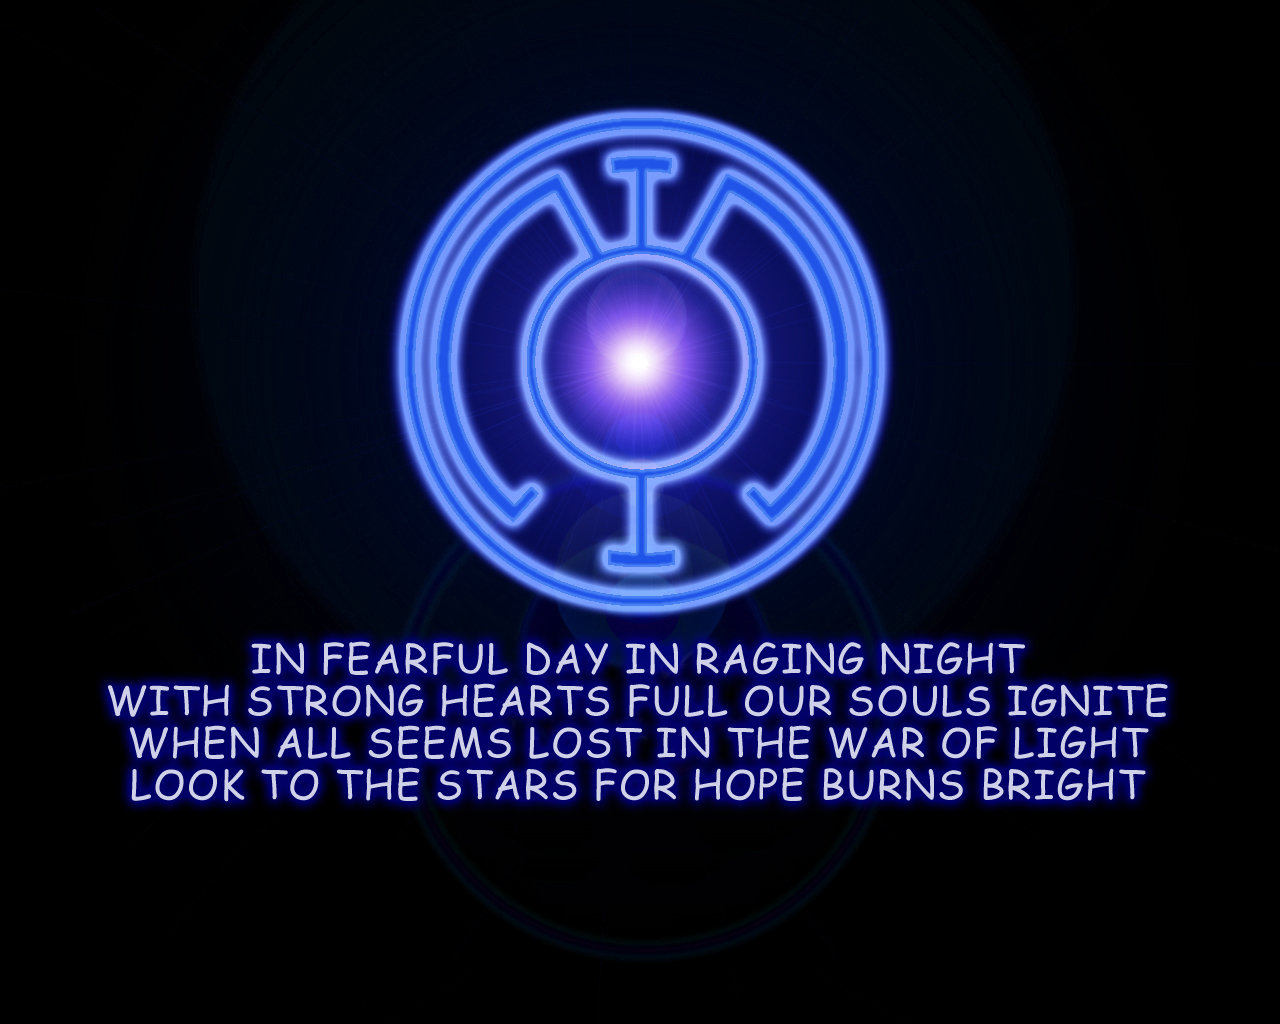 GL Desktop Blue Lantern Oath by saikat4ever 1280x1024